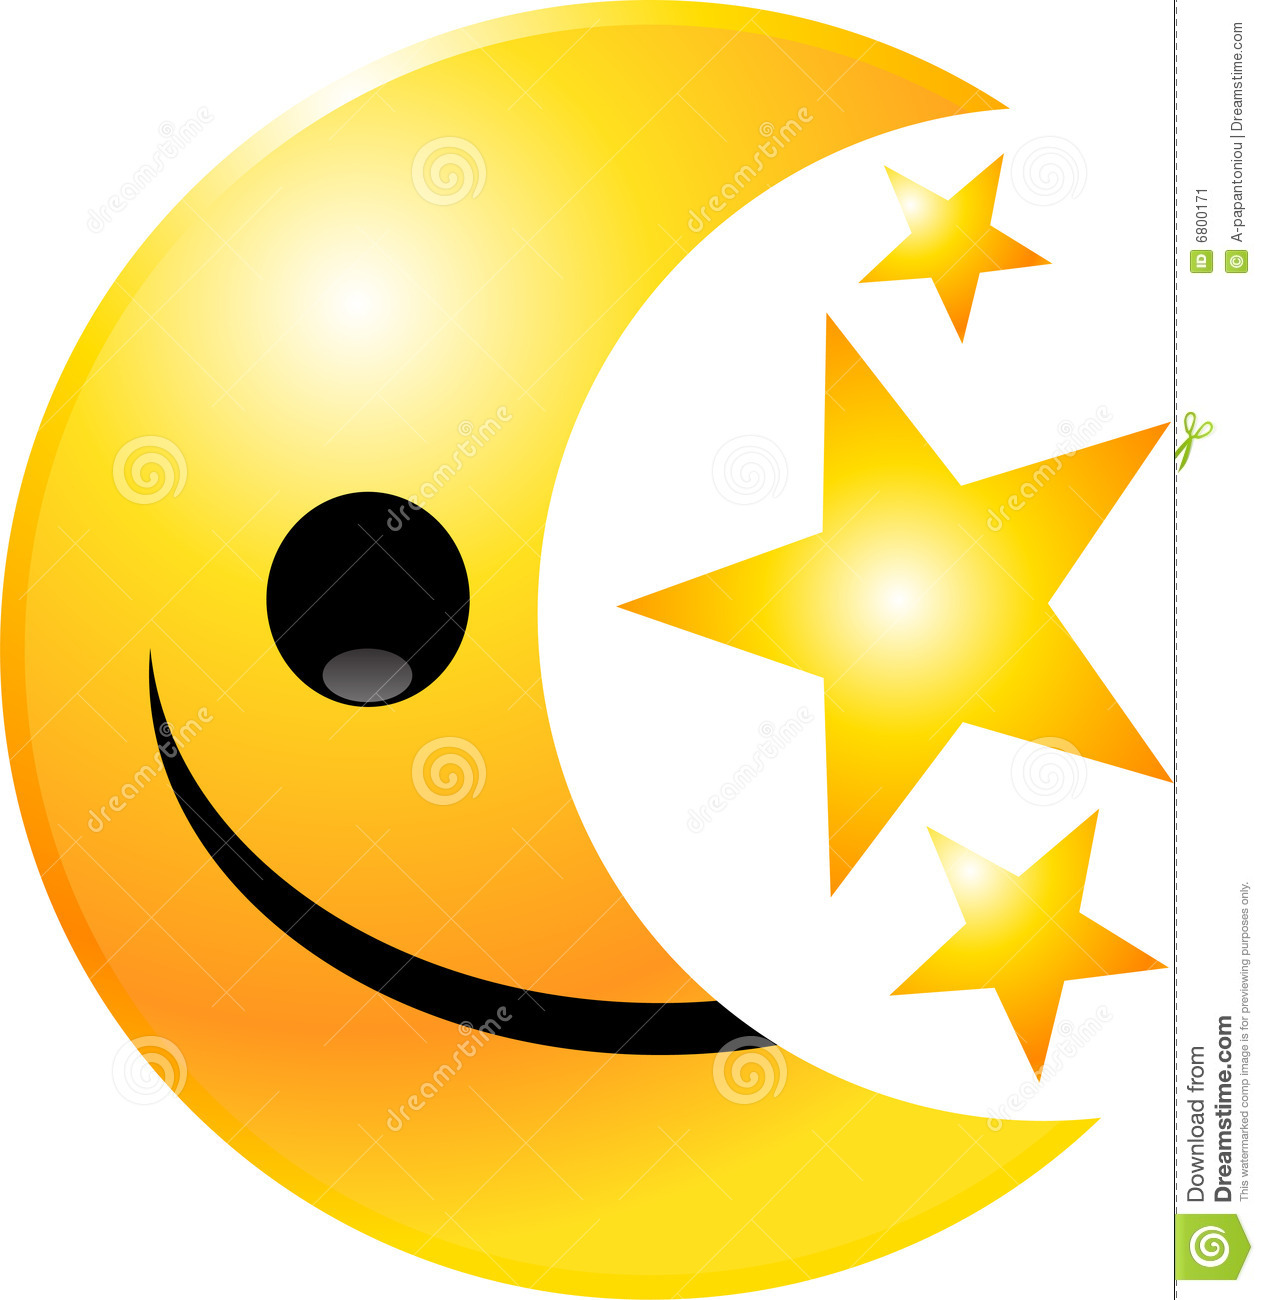 Clip Art Smiley Faces Emotions